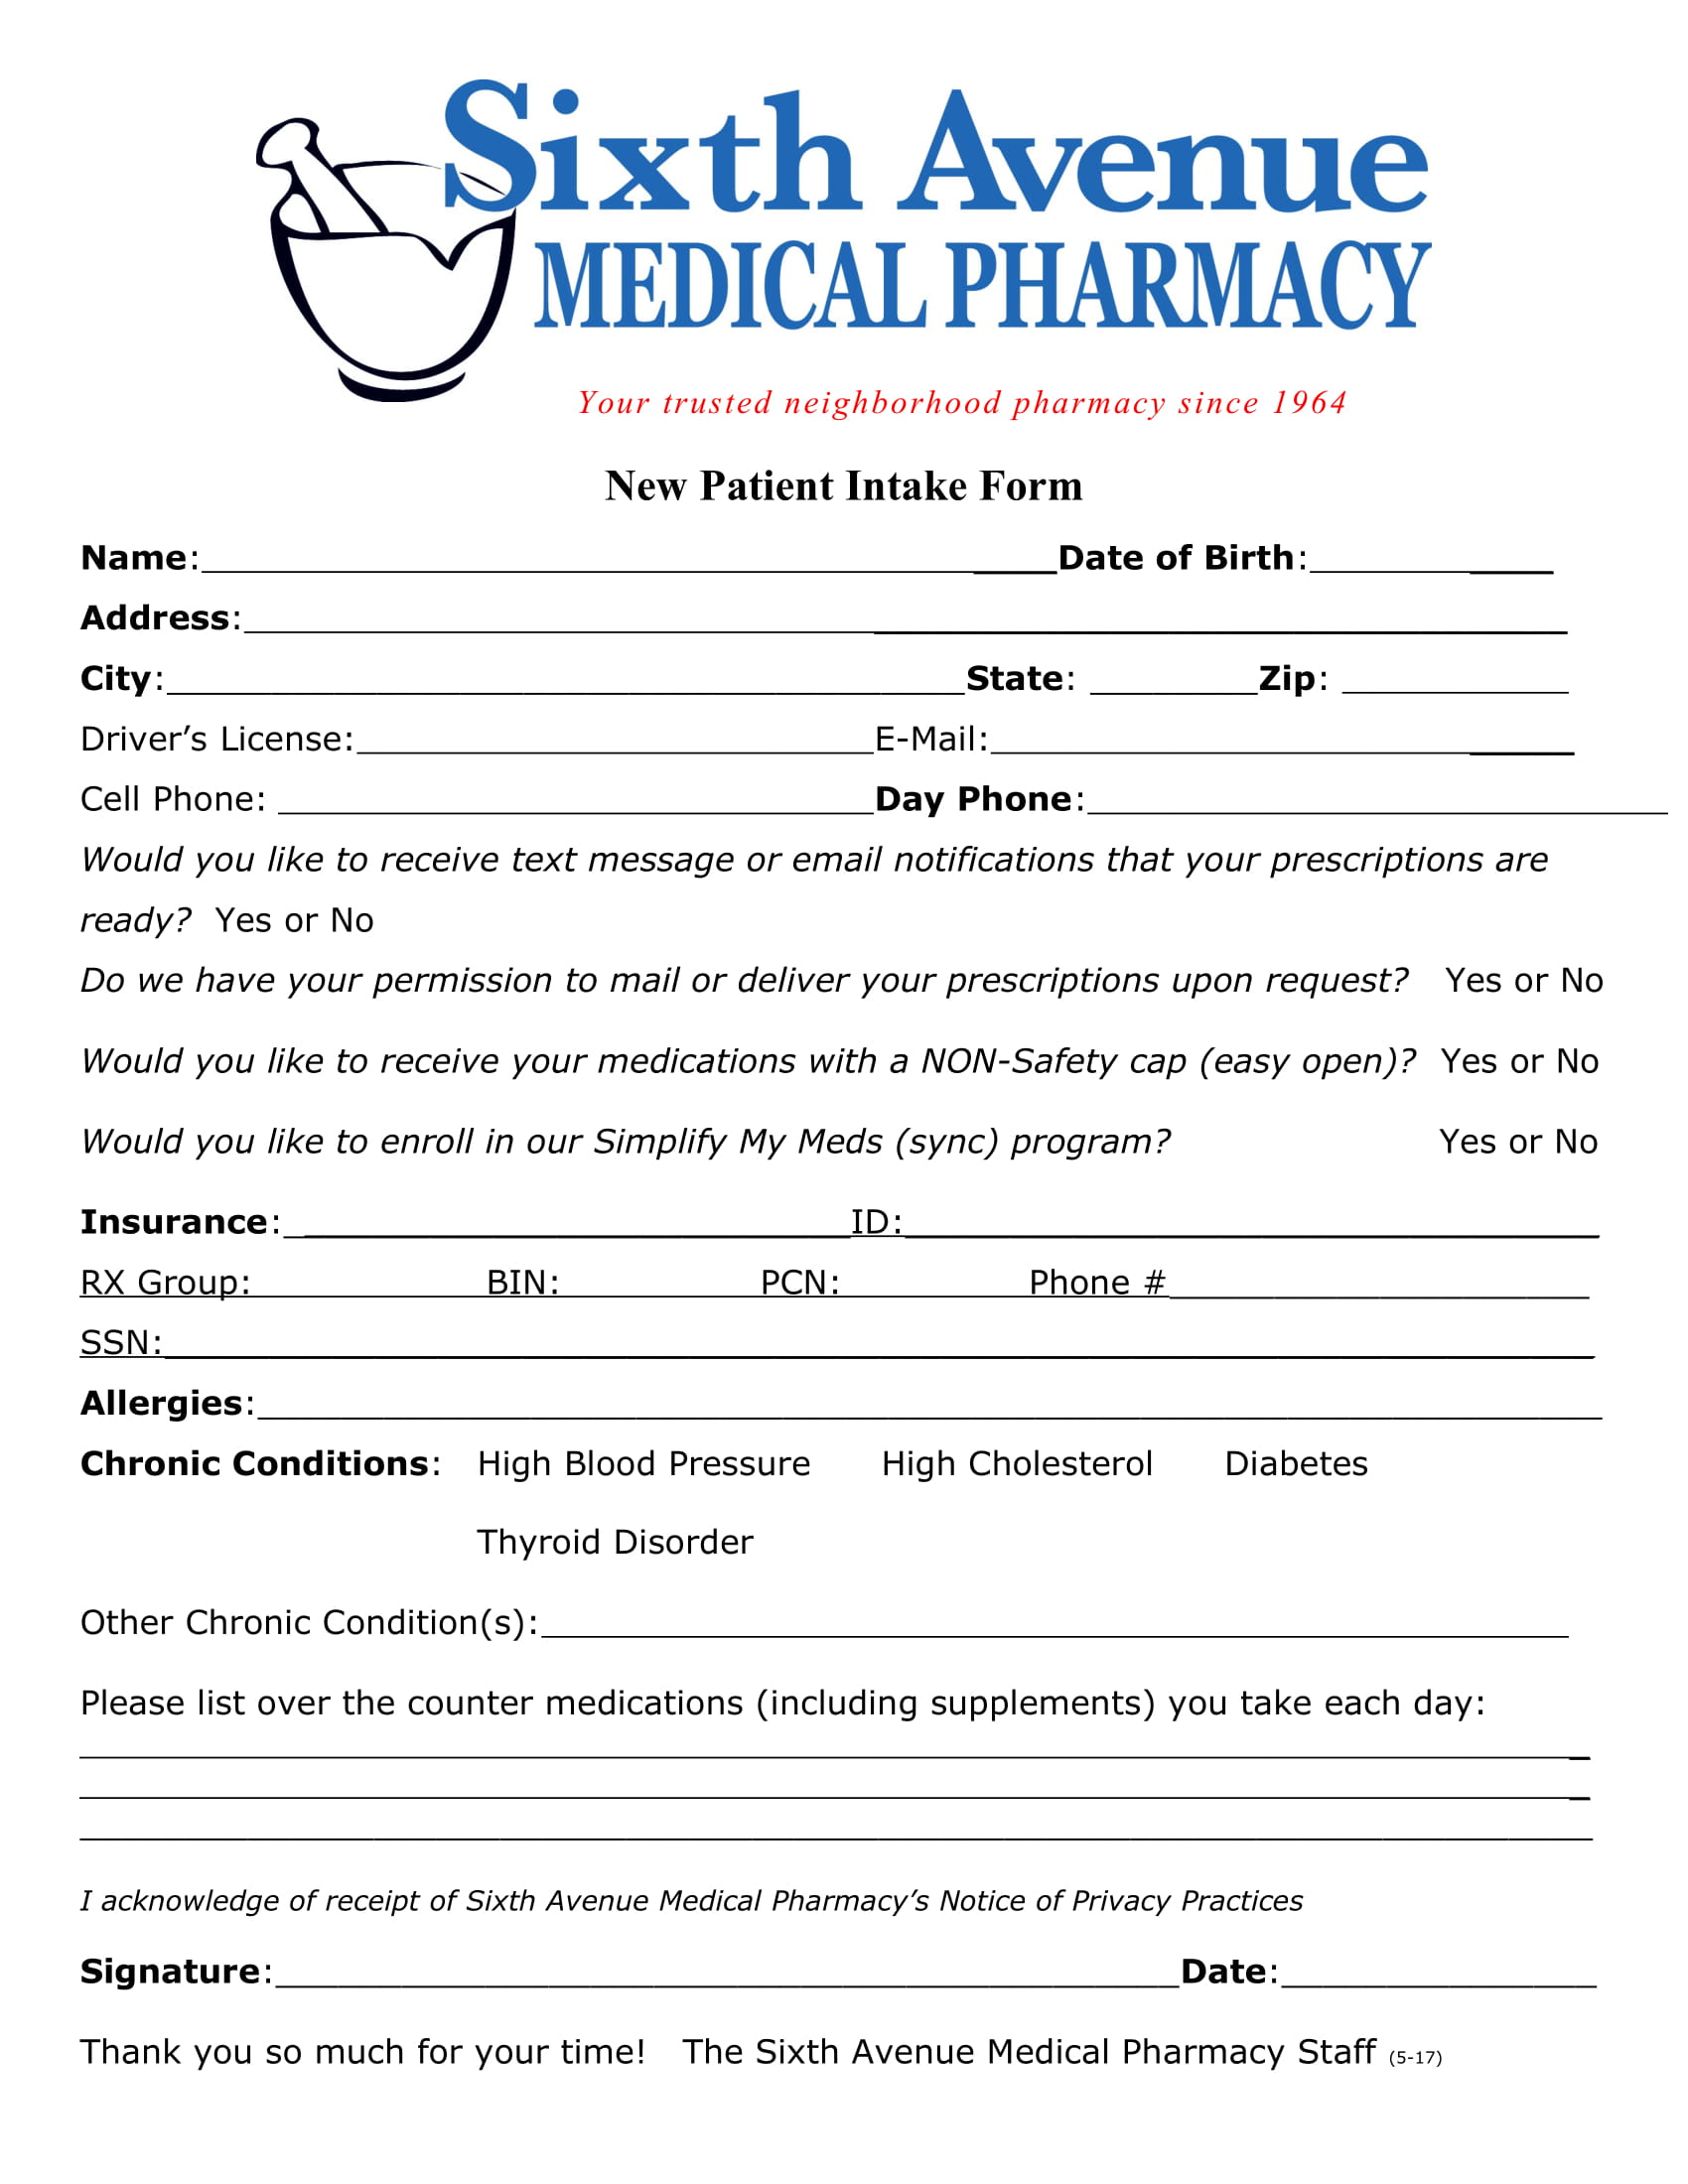 New Patient Form Template Funfndroid